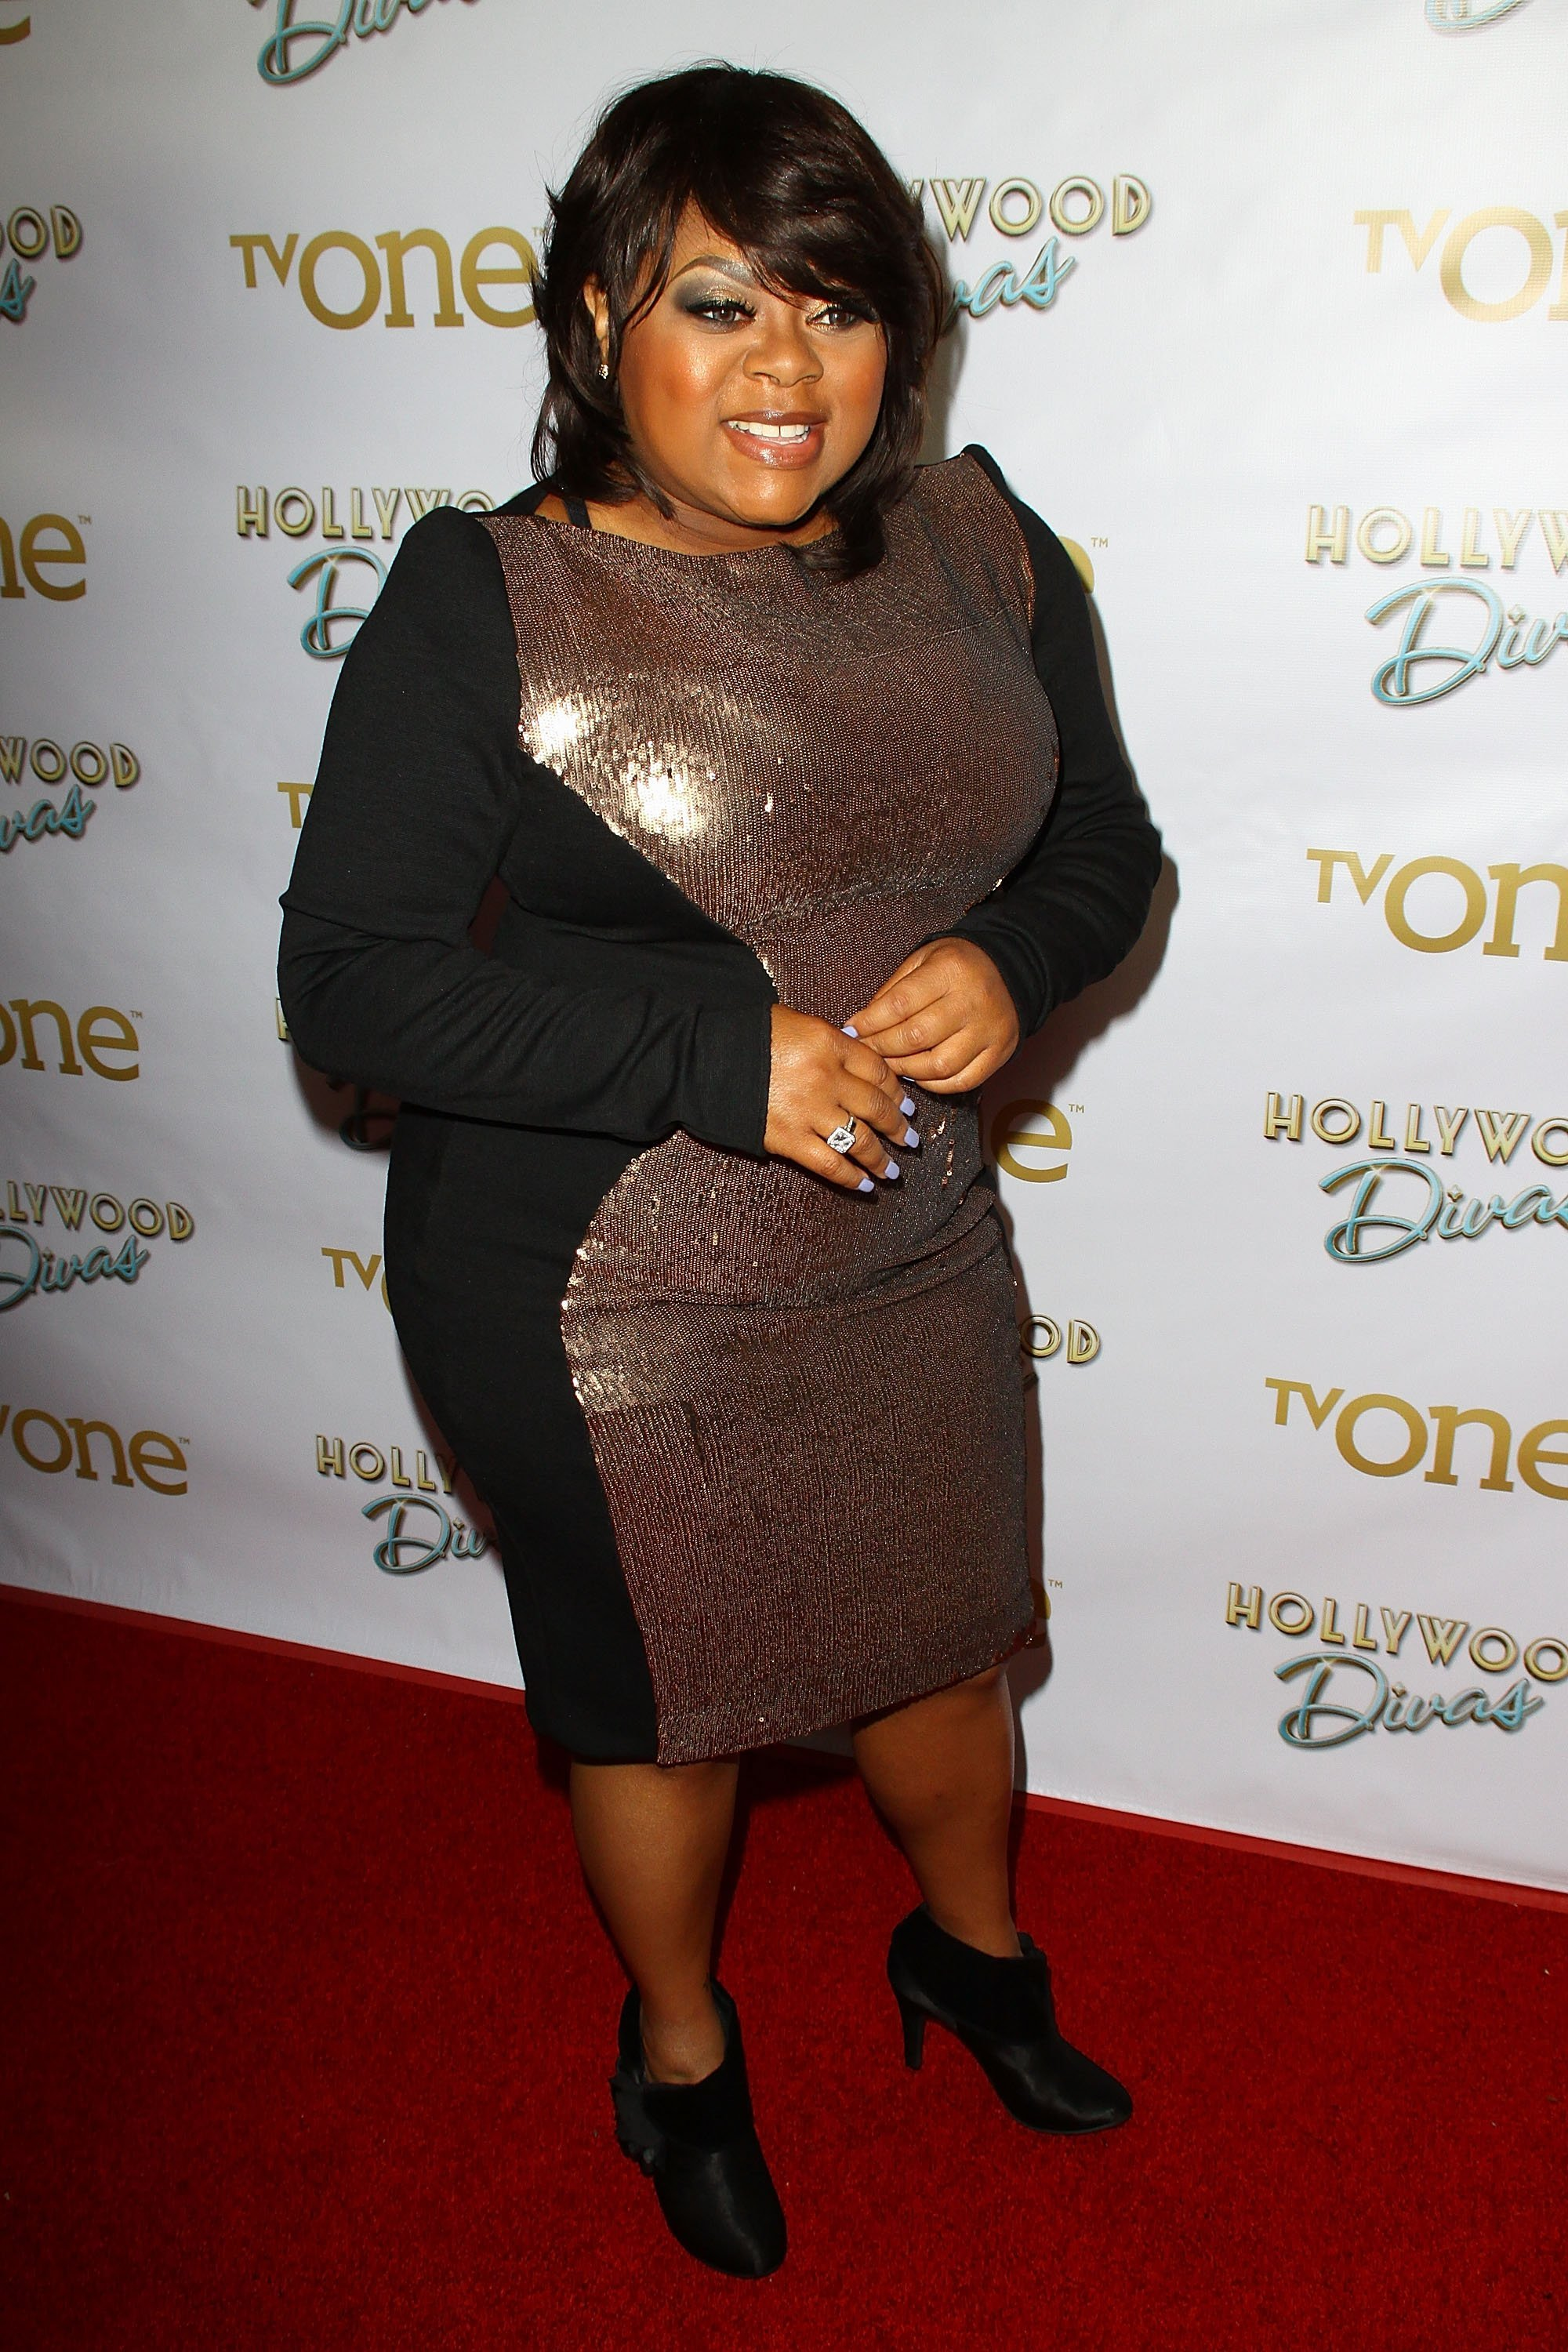 Countess Vaughn attends the premiere party for TV One's 'Hollywood Divas' at OHM Nightclub on October 7, 2014 | Photo: GettyImages